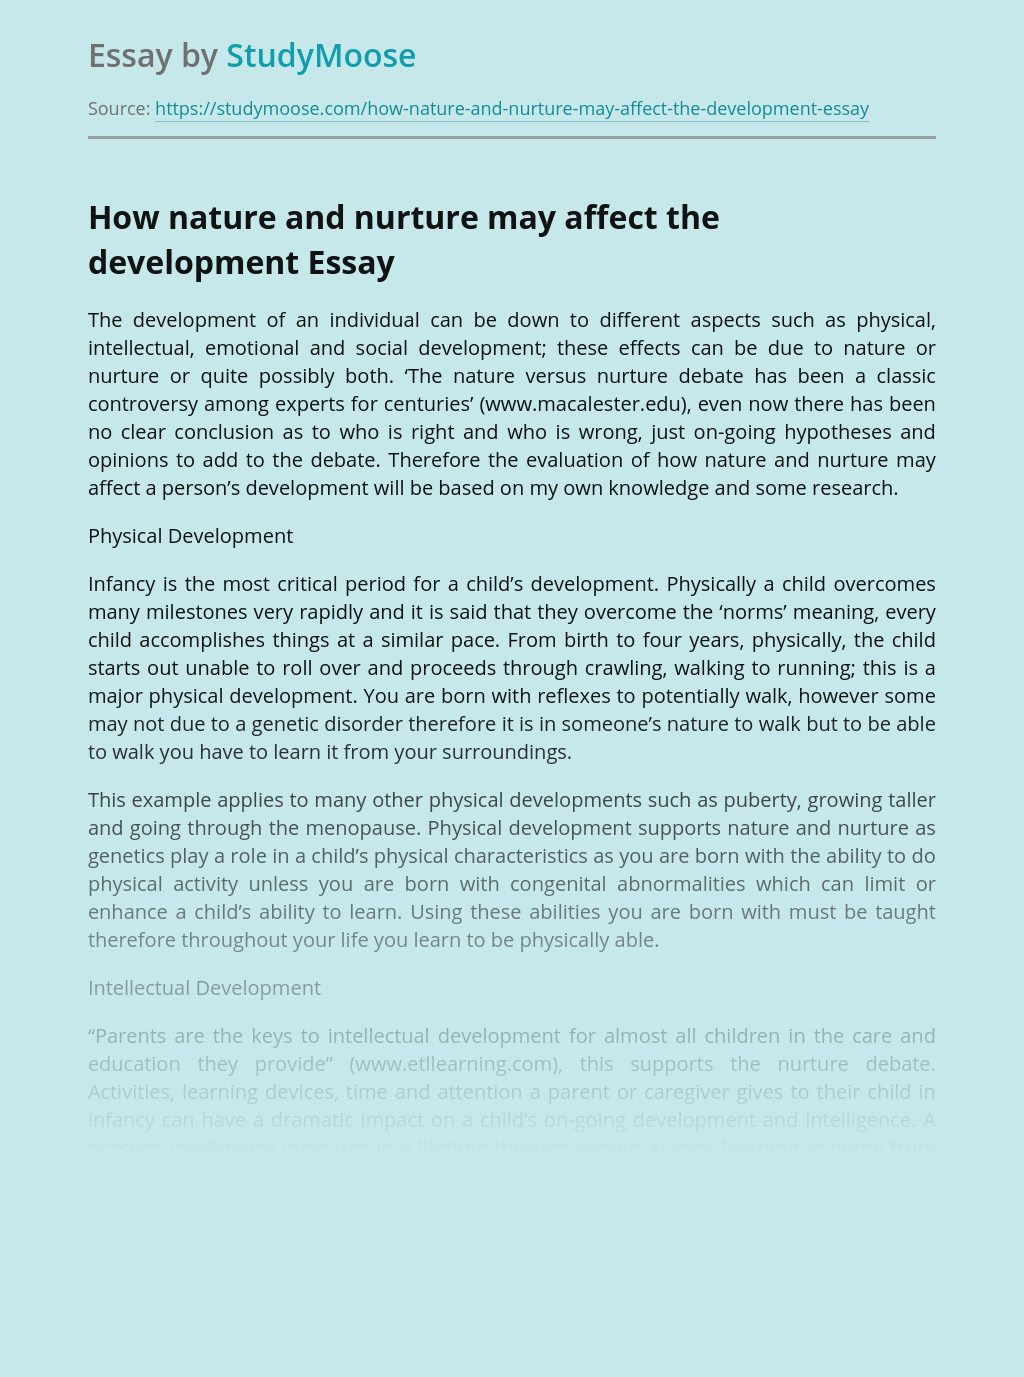 How nature and nurture may affect the development